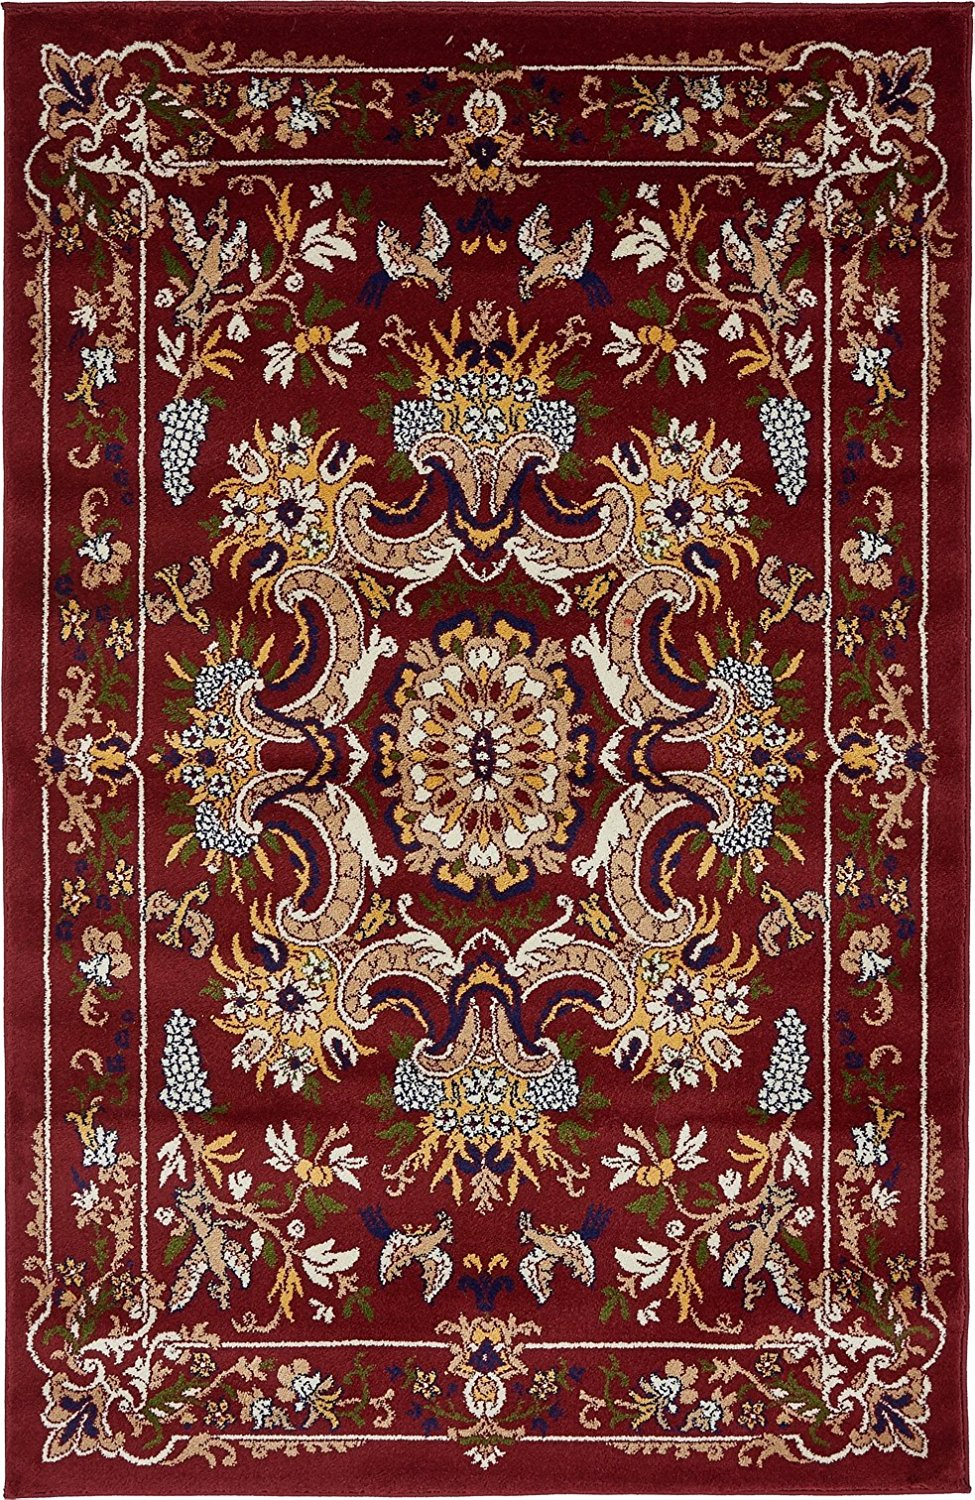 A2Z Rug Majesty Collection 4' x 6'-Feet Area Rugs, Burgundy